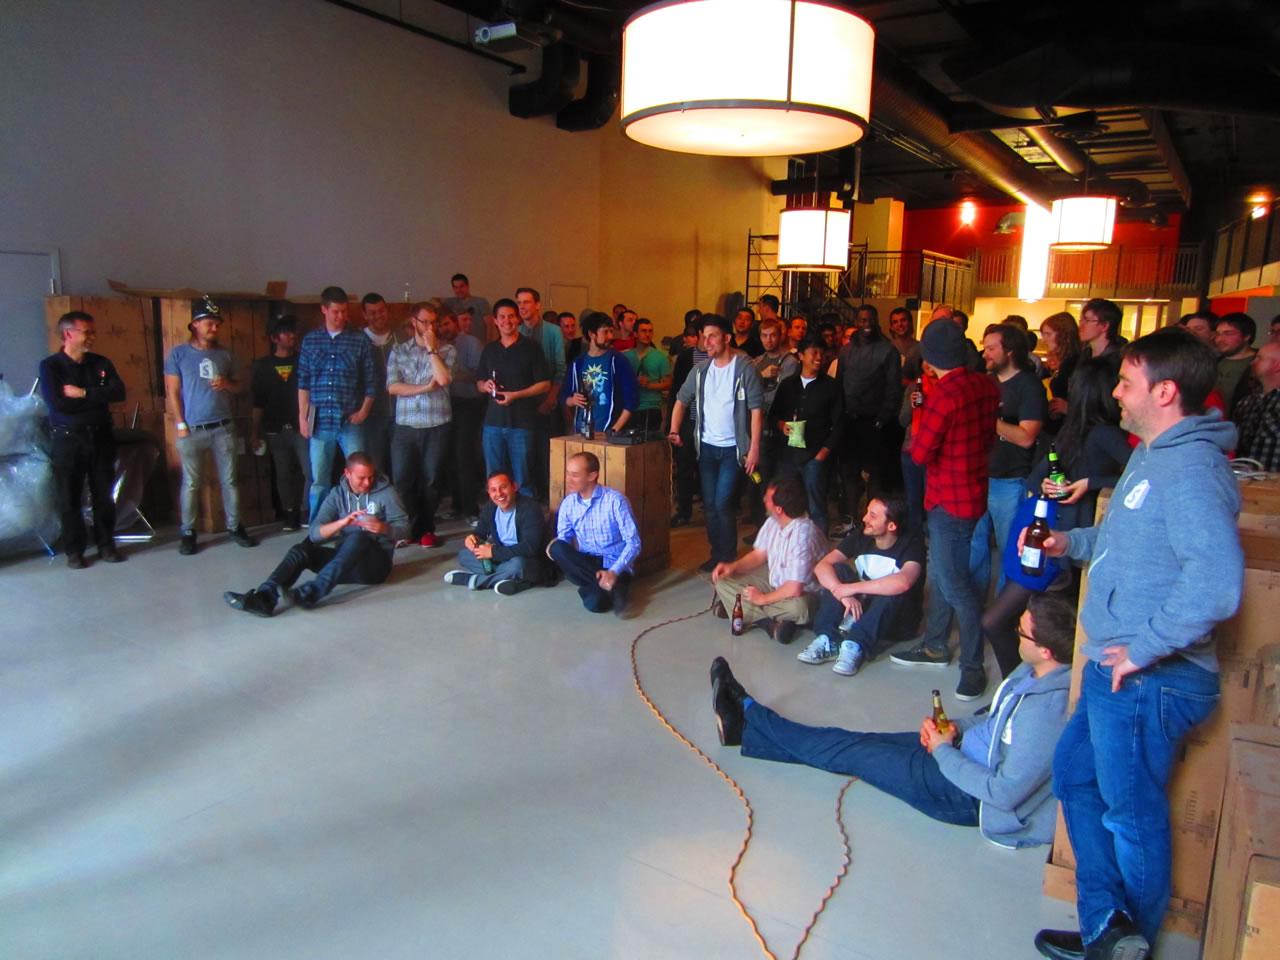 Shopify employees watching an all-hands presentation